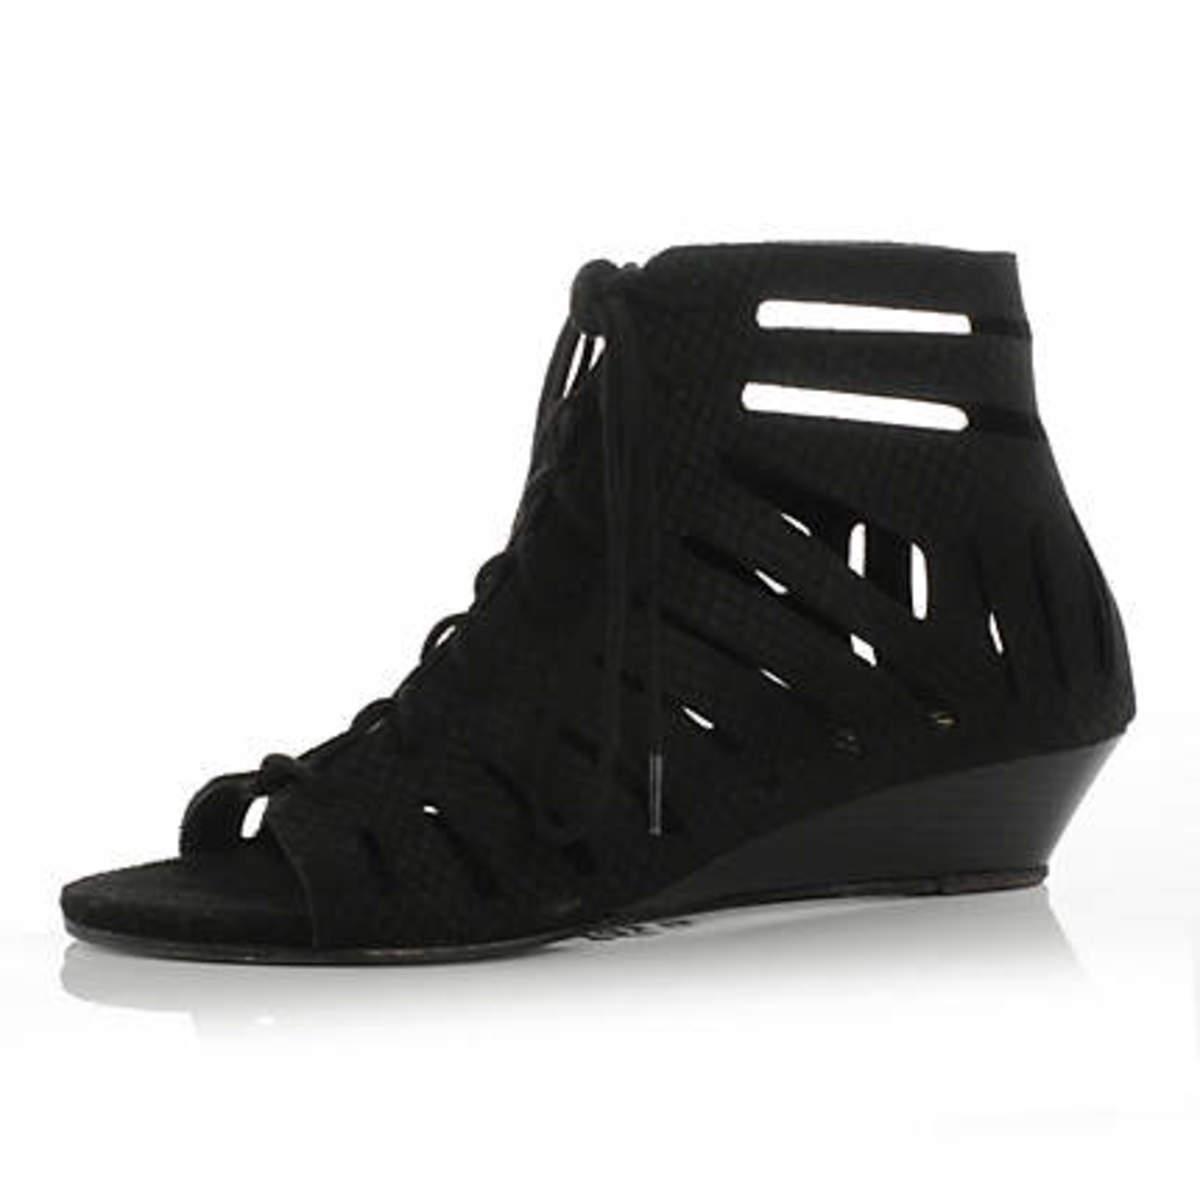 trendy cage wedge sandal